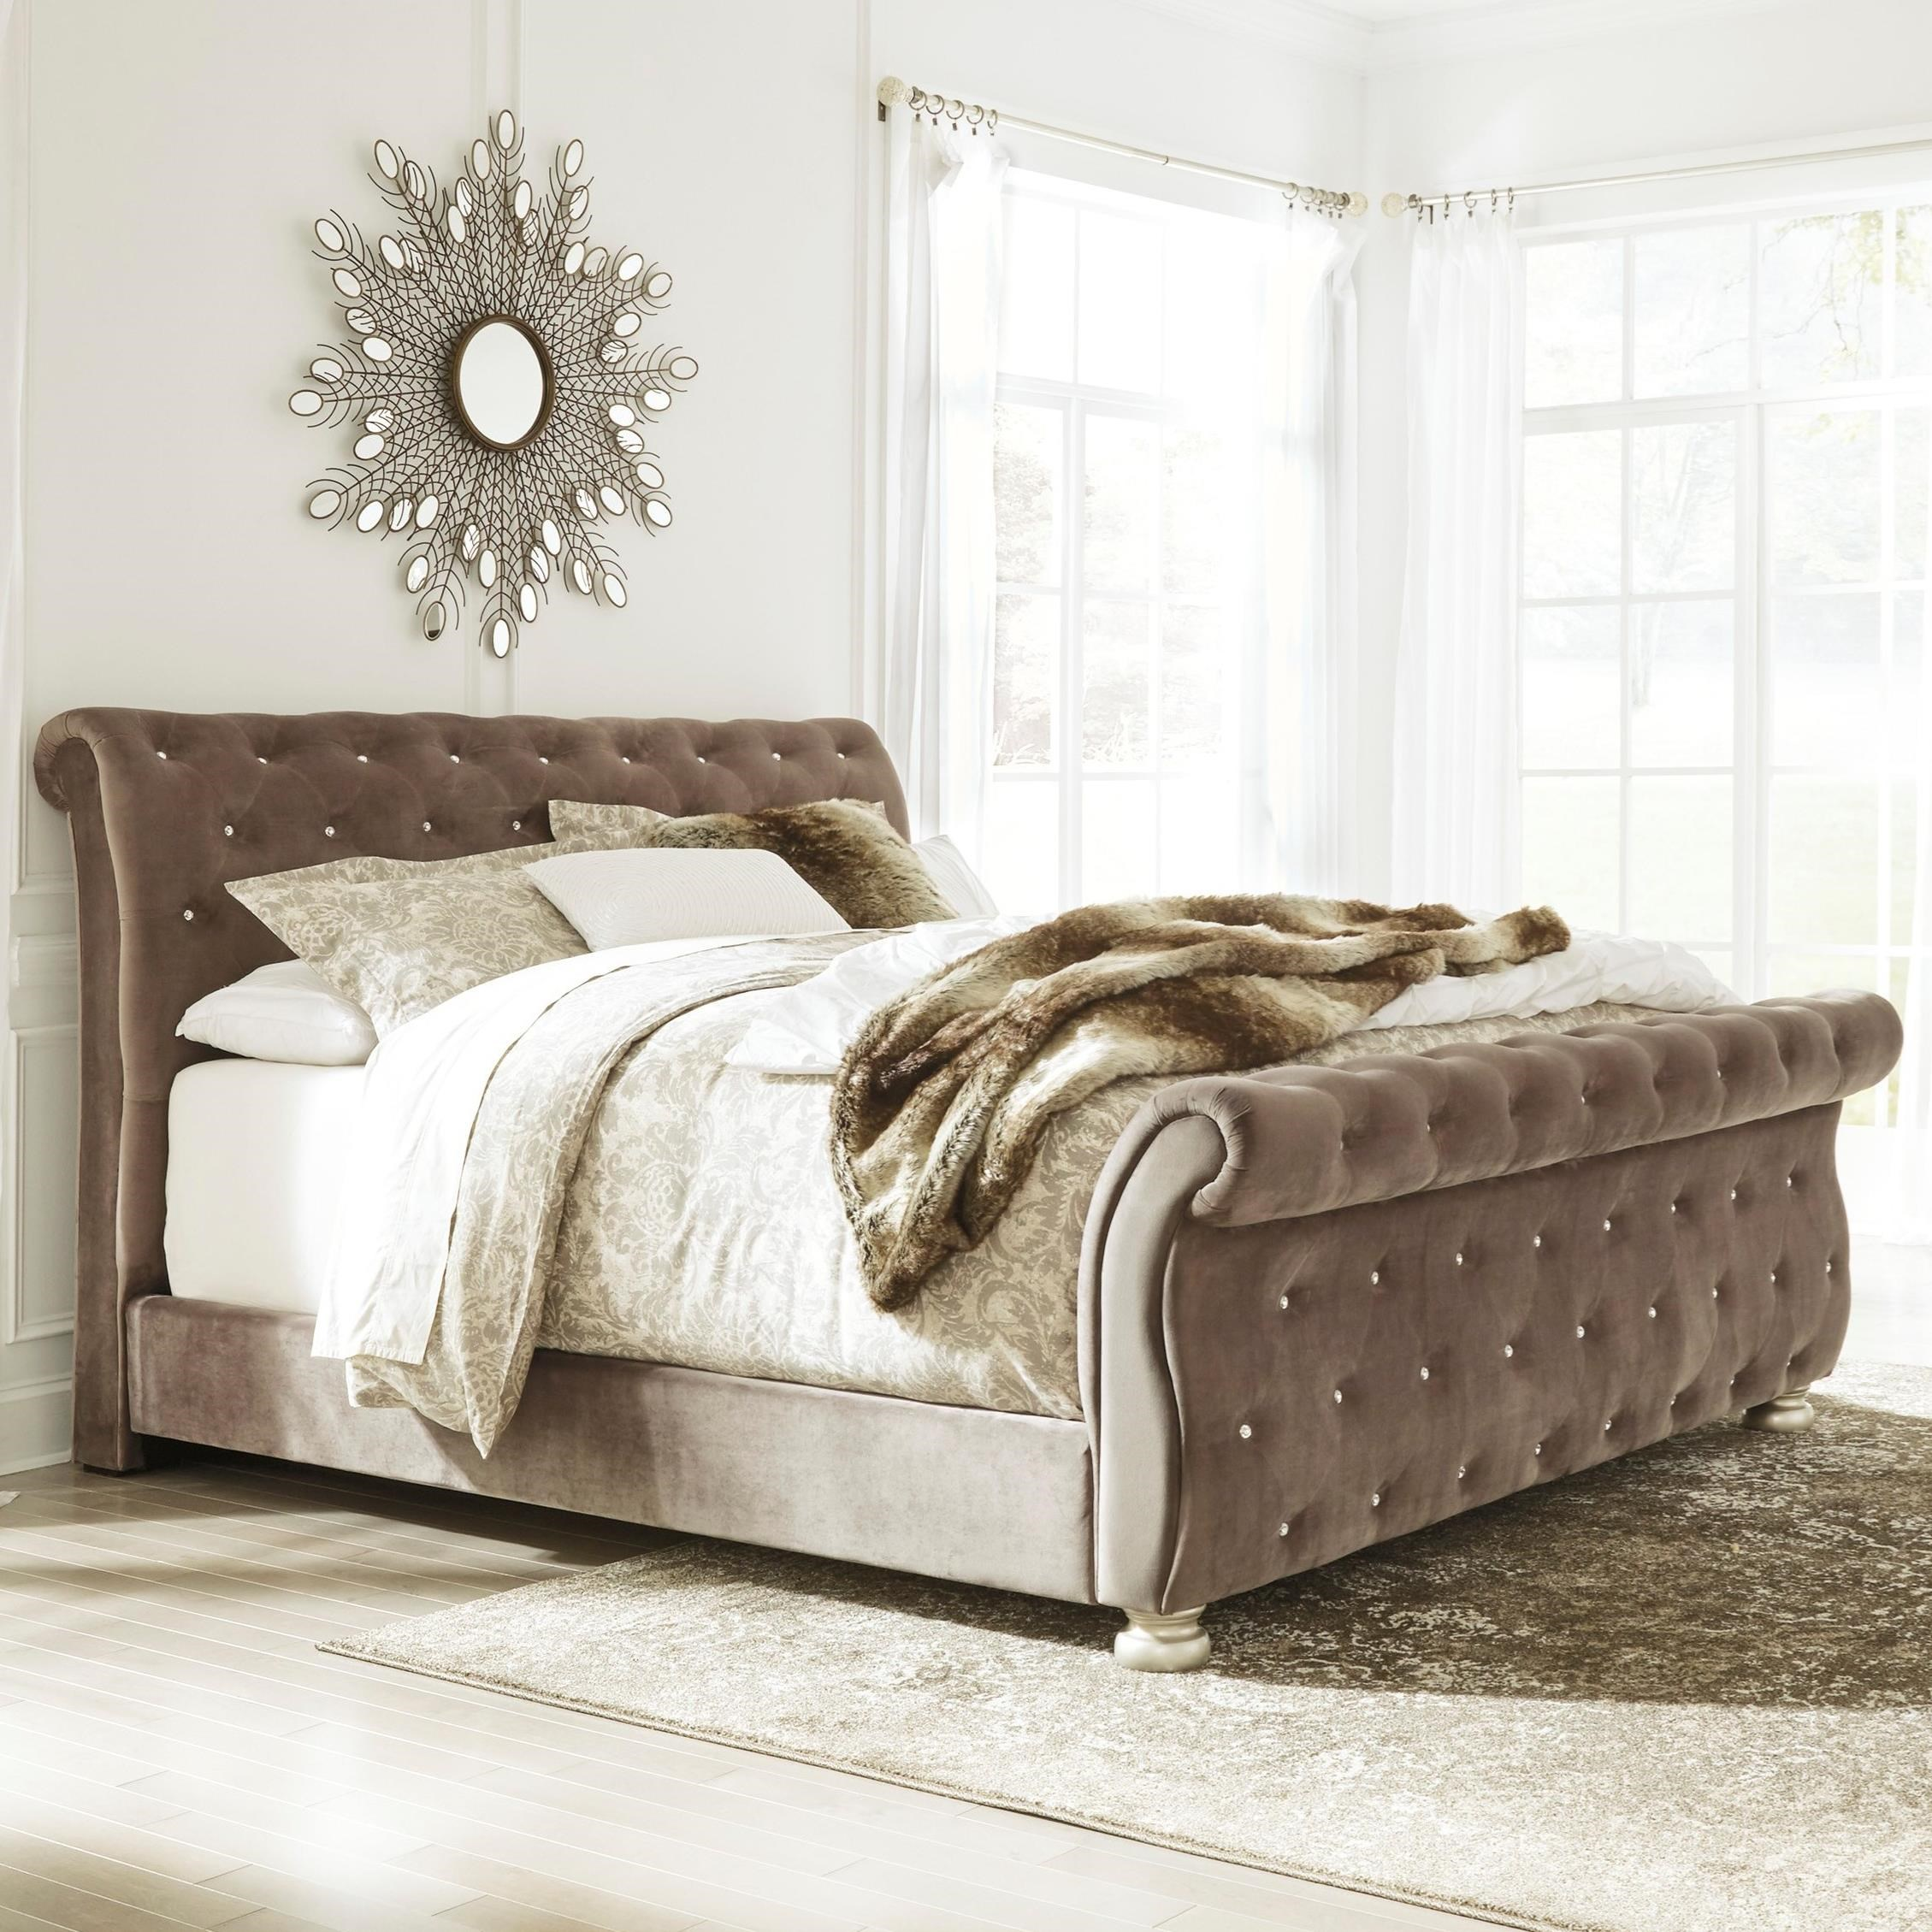 King Upholstered Sleigh Bed With Faux Crystal Tufting By